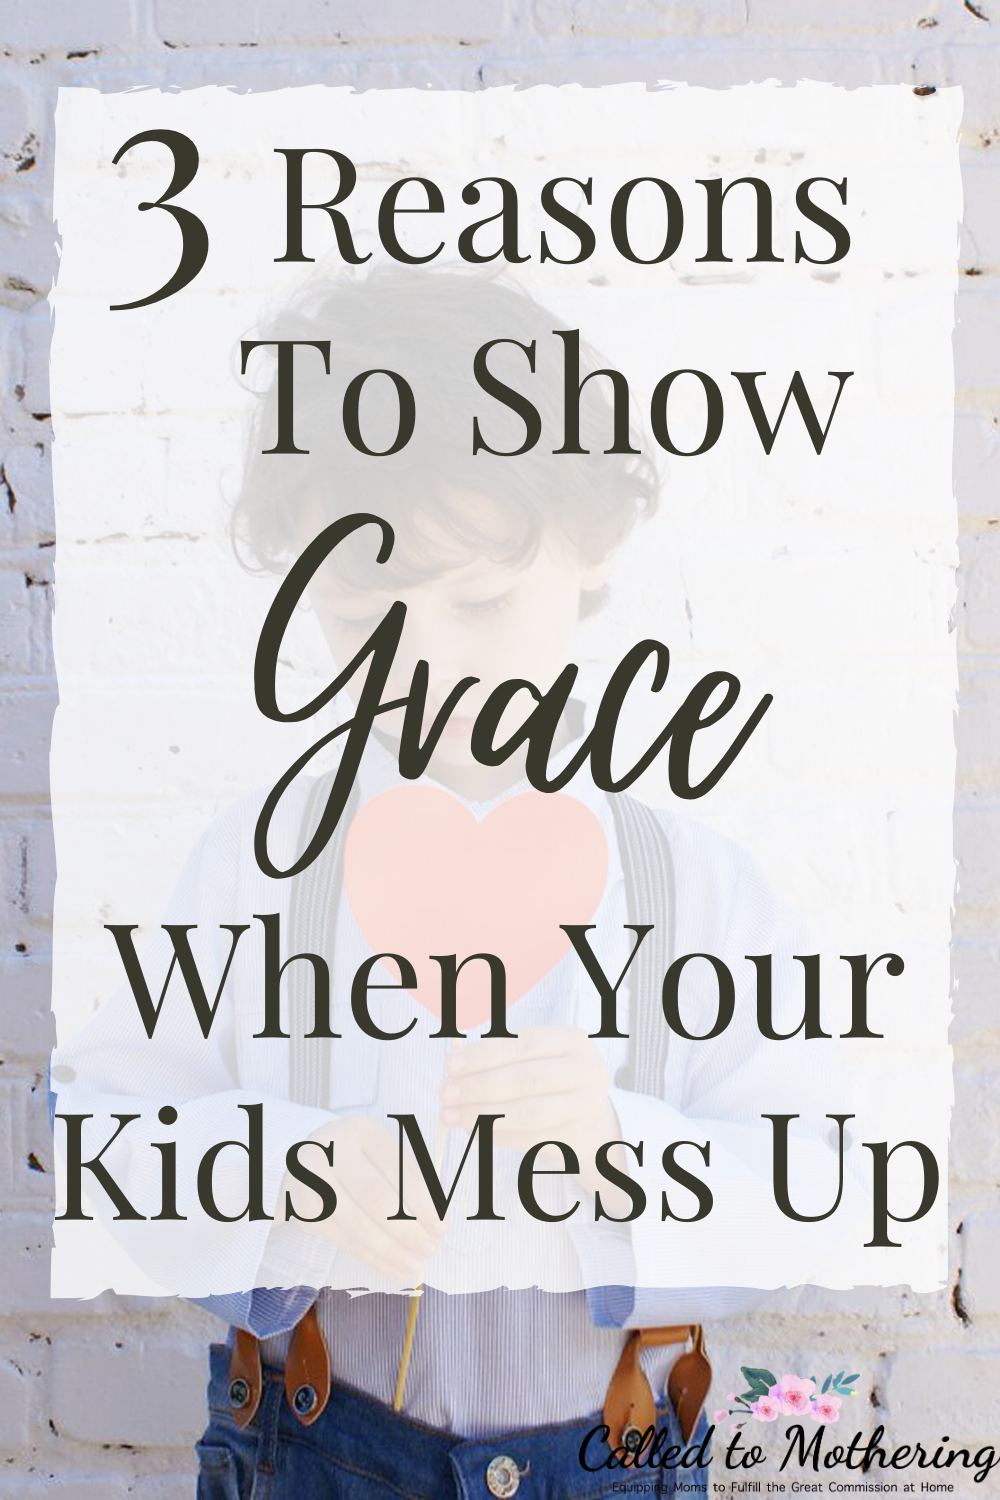 Three reasons to show grace to your kids even when you think they don't deserve it. #christianparenting #positiveparenting #raisinggodlykids #gentleparenting